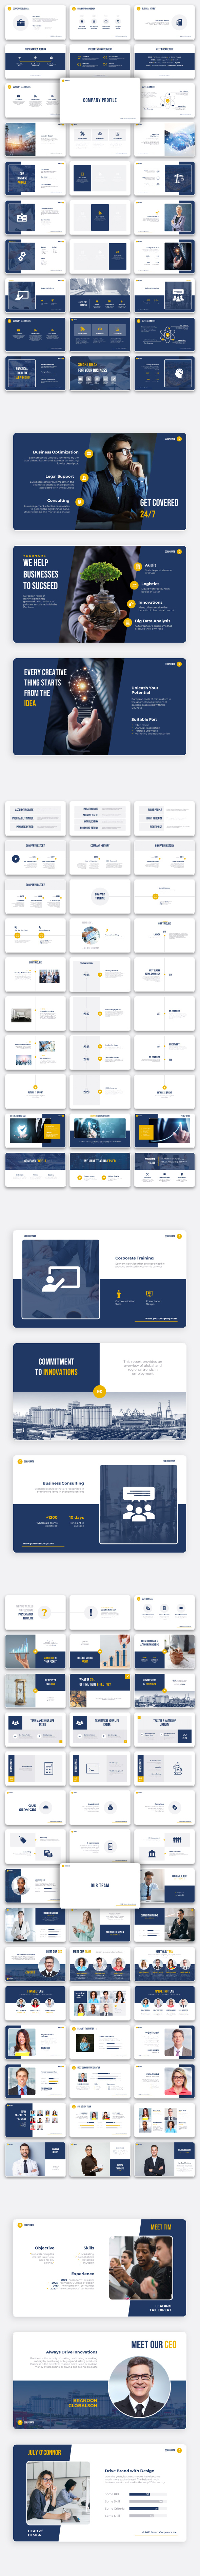 Corporate - Premium PowerPoint Template for Business - 6